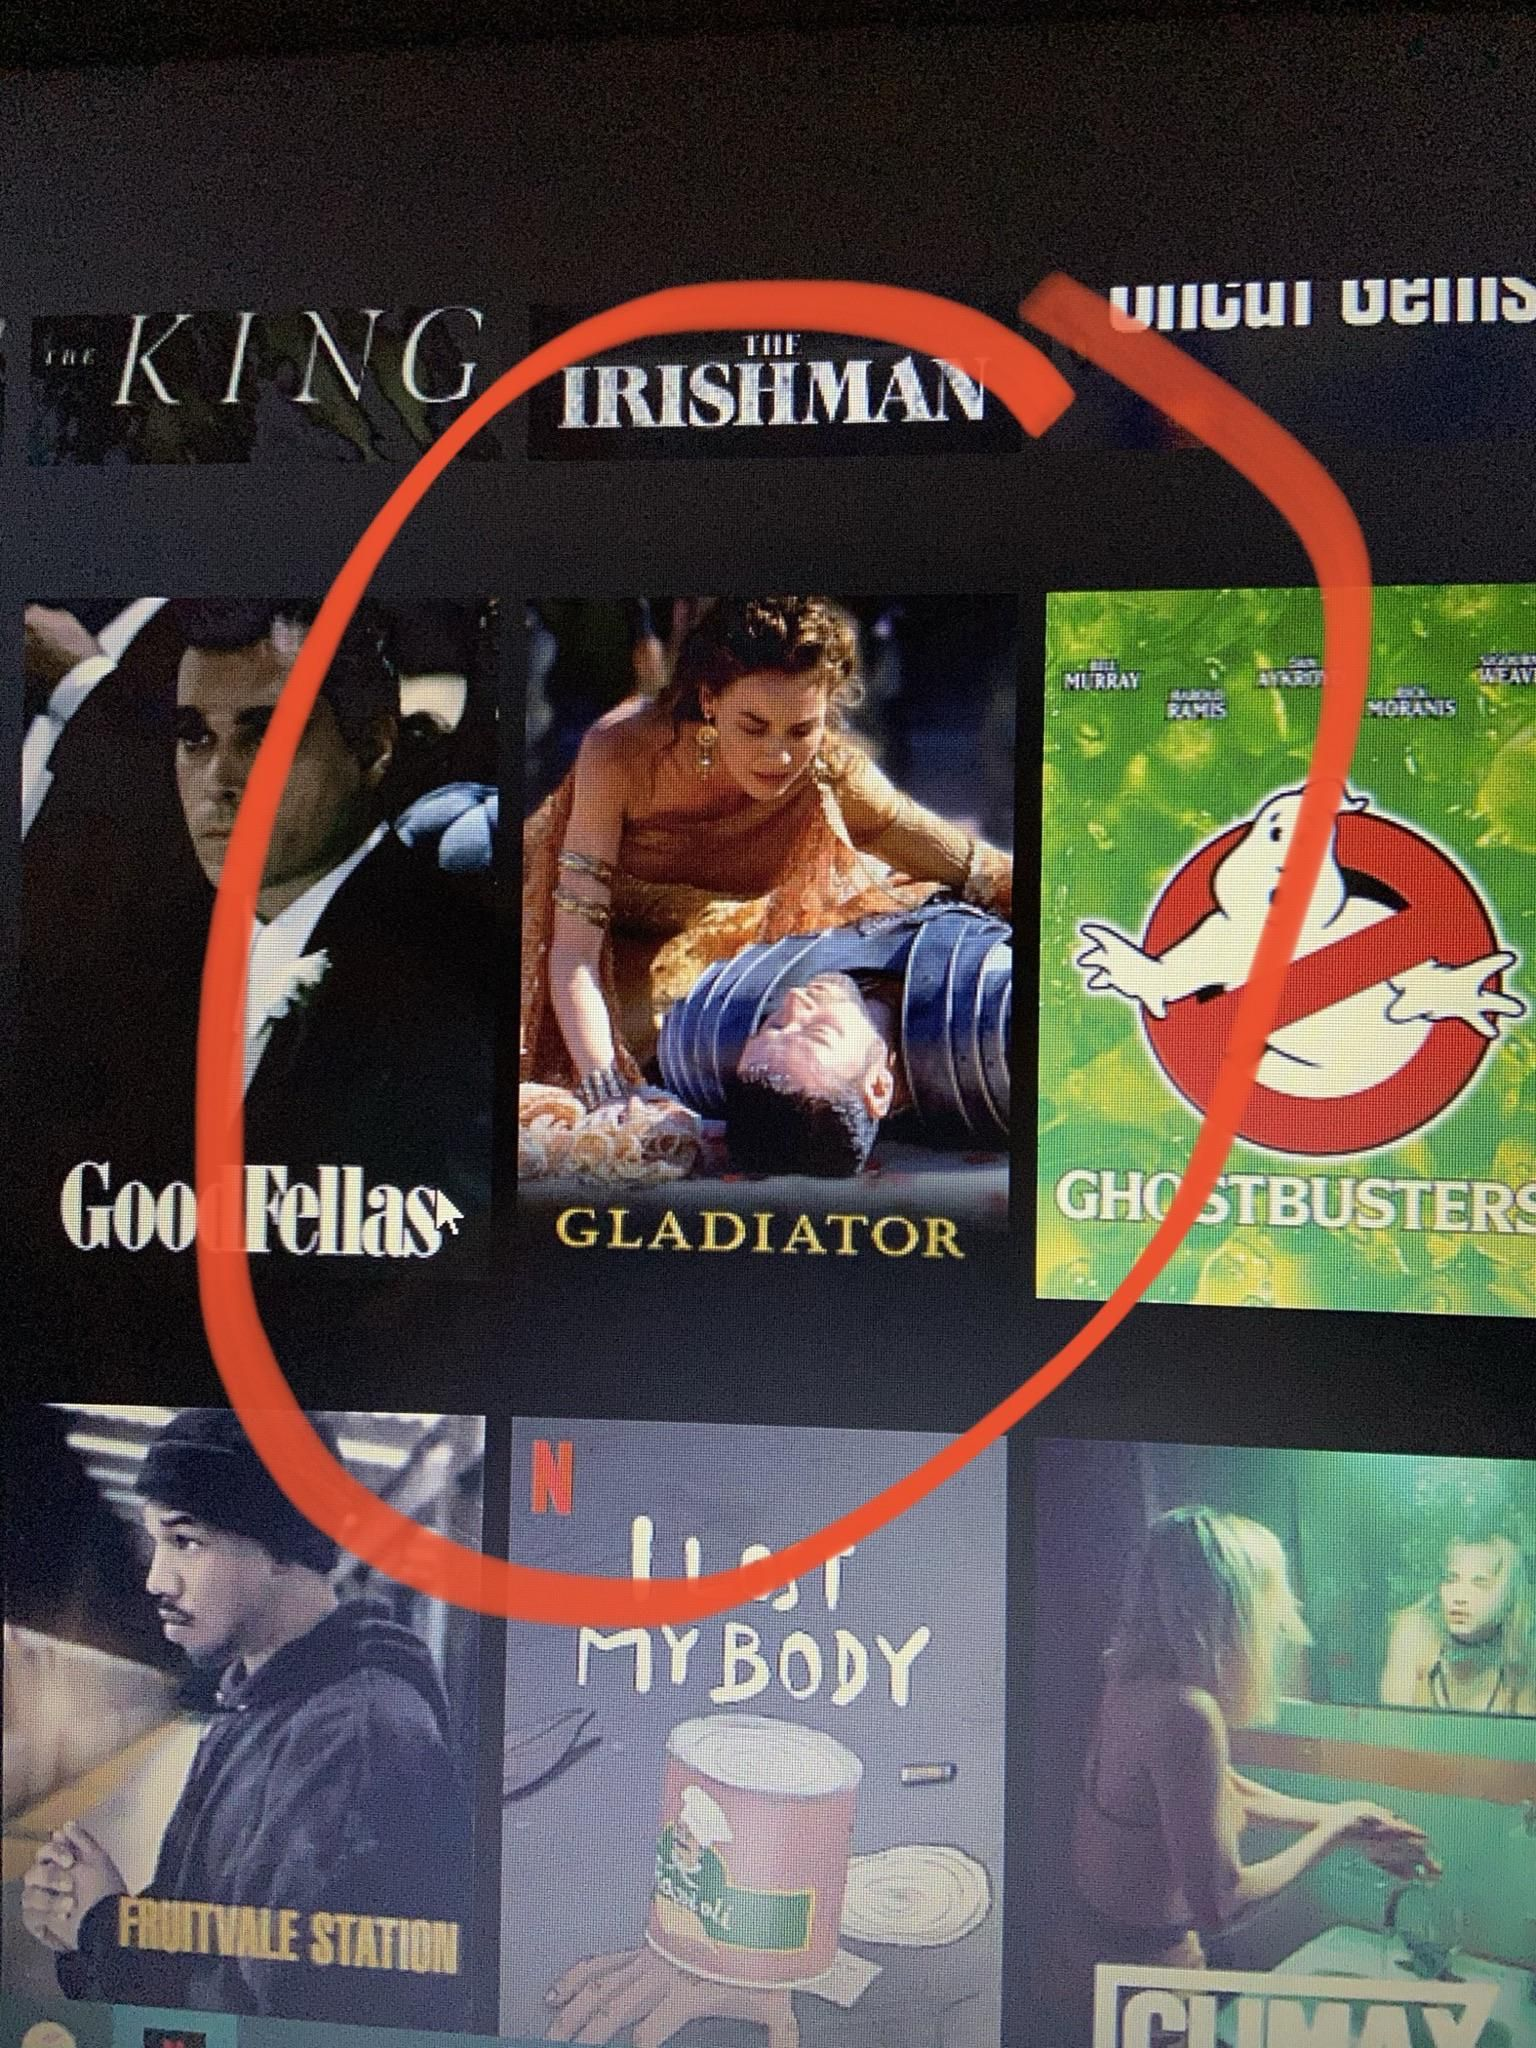 The Netflix thumbnail for Gladiator (2000) is a spoiler в